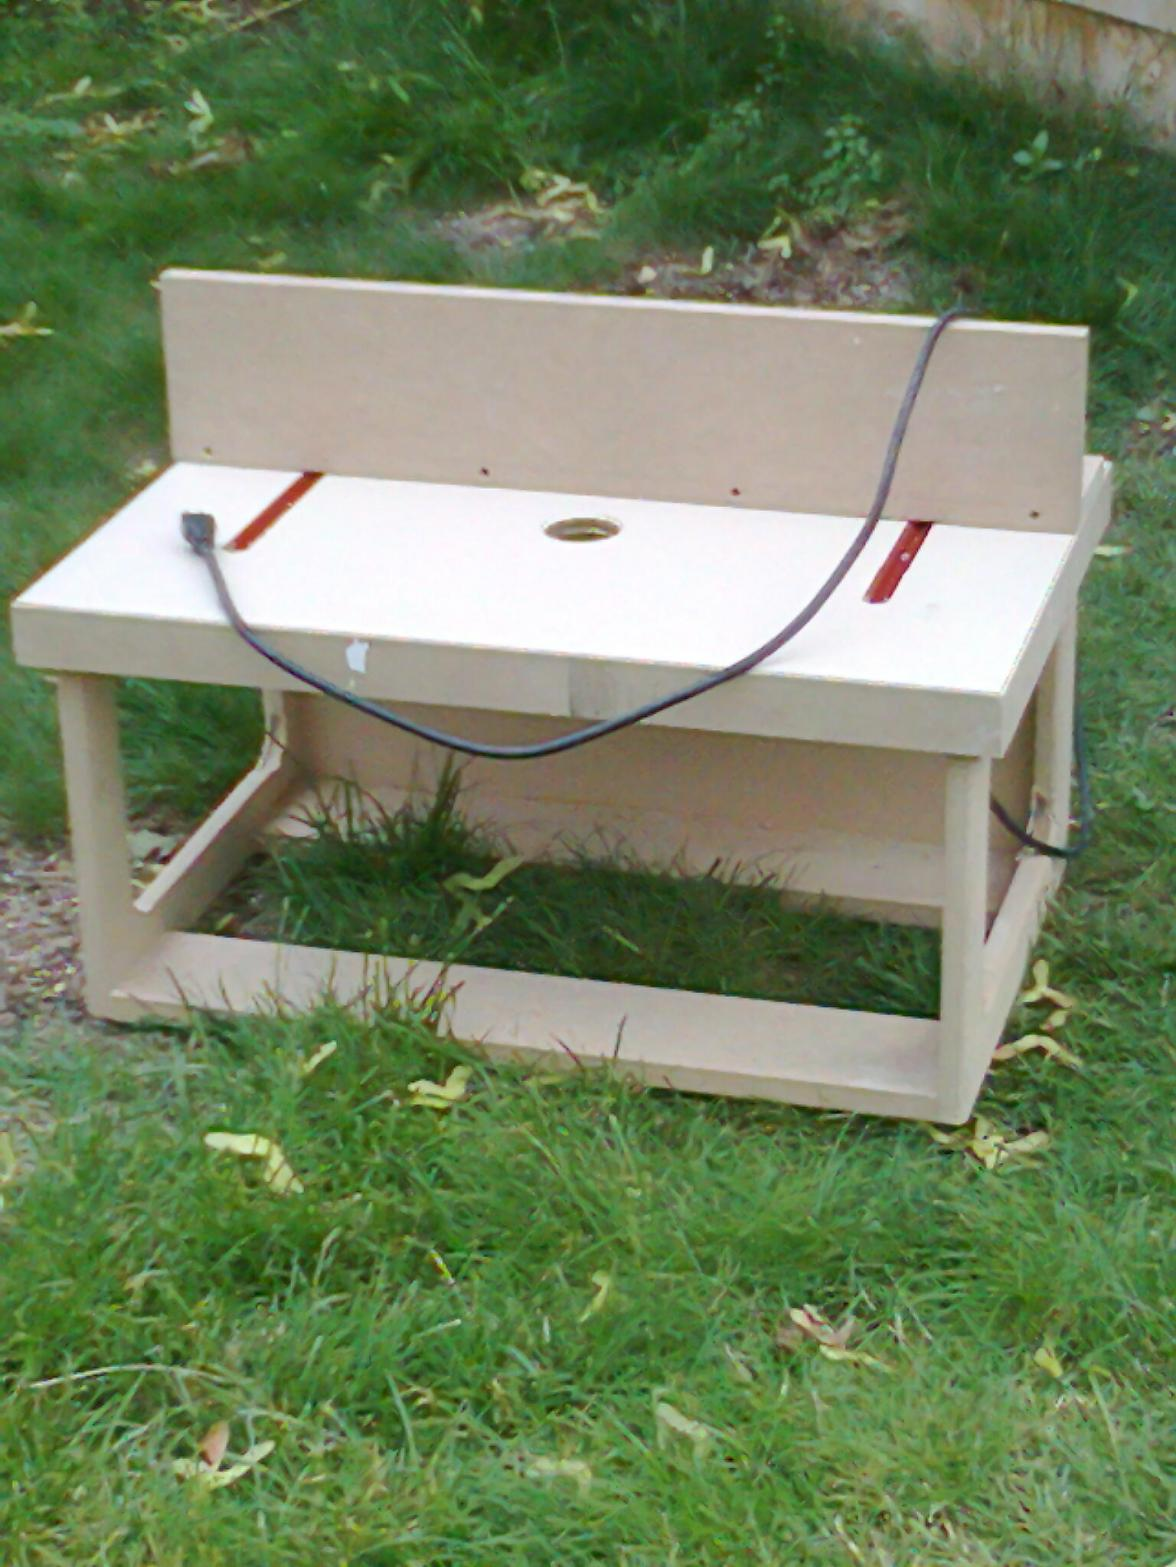 Router Table - Finish Carpentry - Contractor Talk